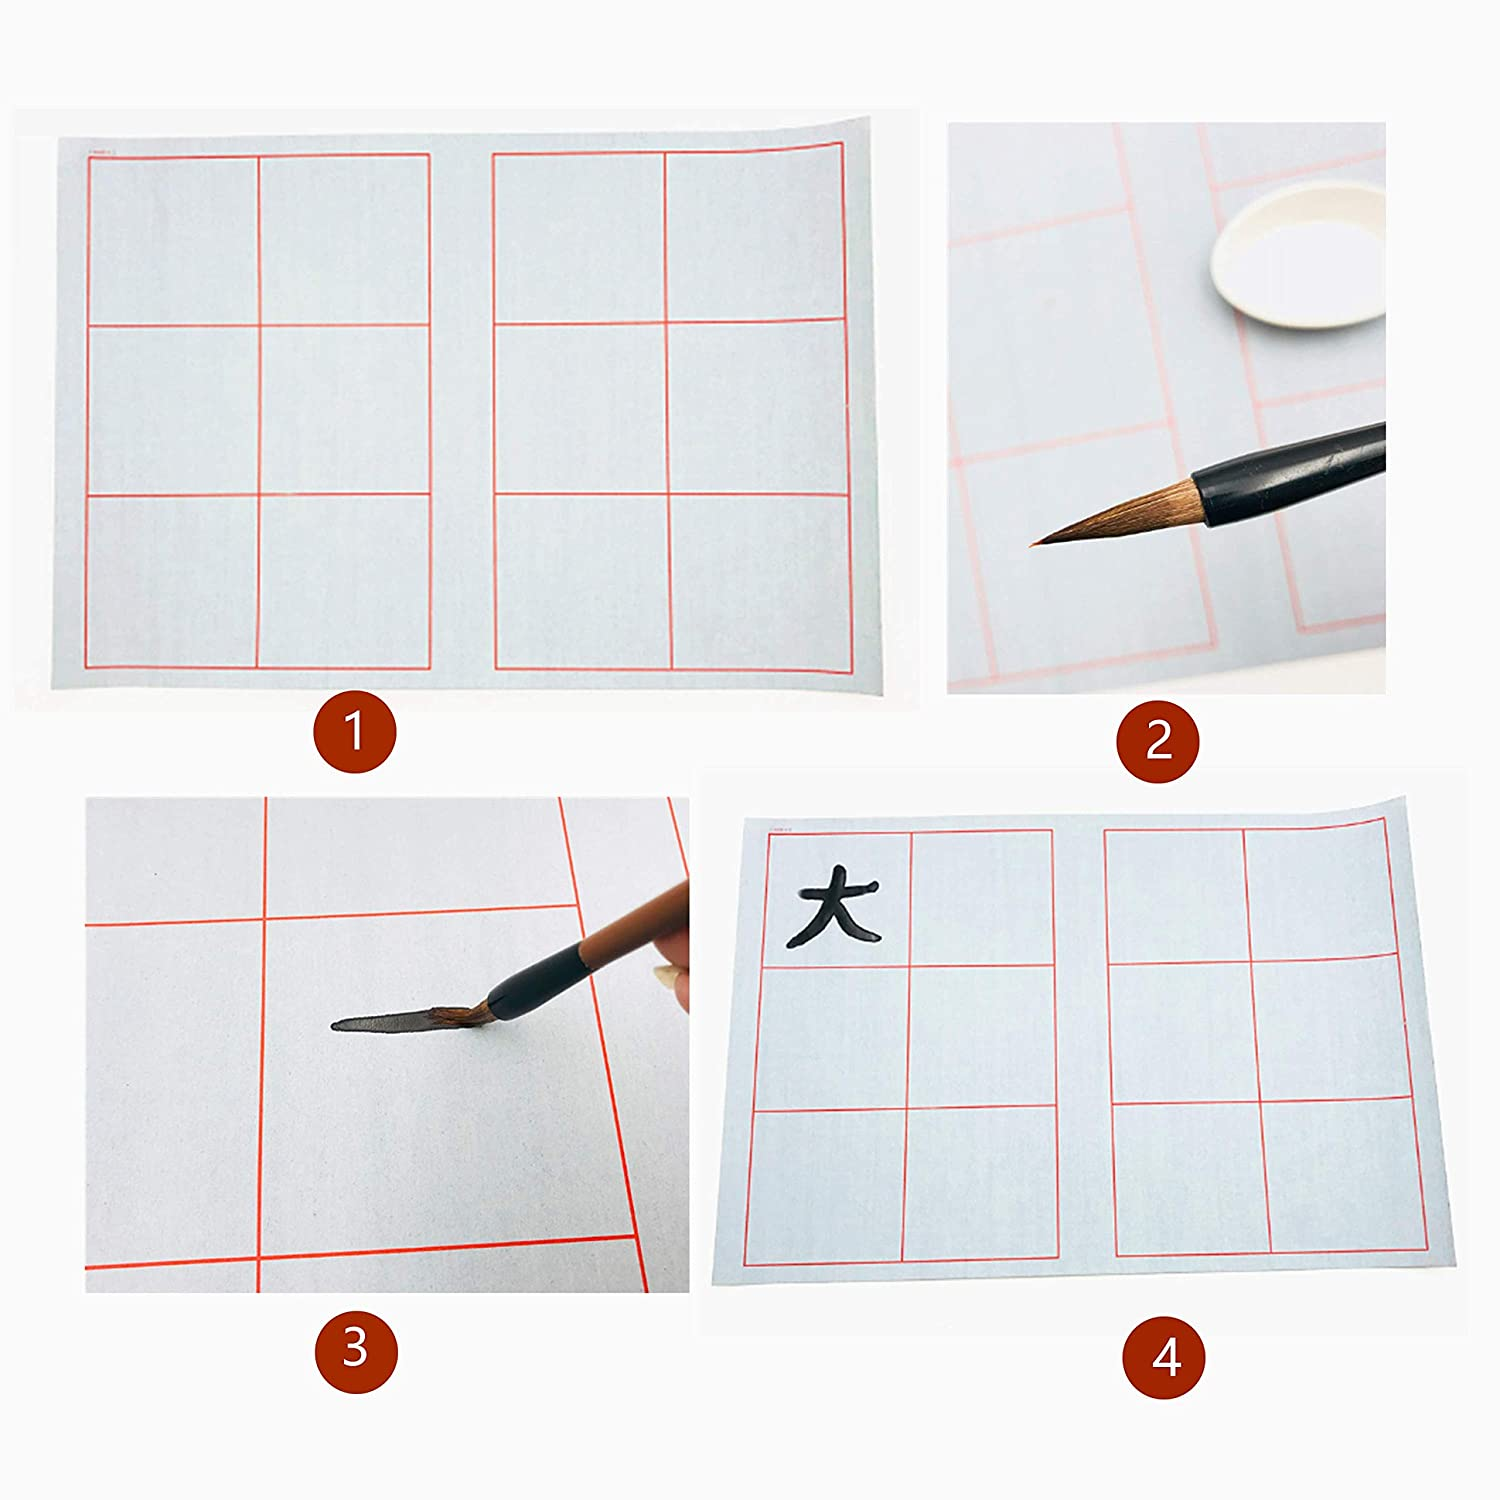 2 Styles Bamboo Wrap and Water Dish,Copybook Rewritable for Calligraphy Beginners Practice Painting DelieKee Chinese Calligraphy Set Reusable Water Writing Magic Cloth with Drawing Brush